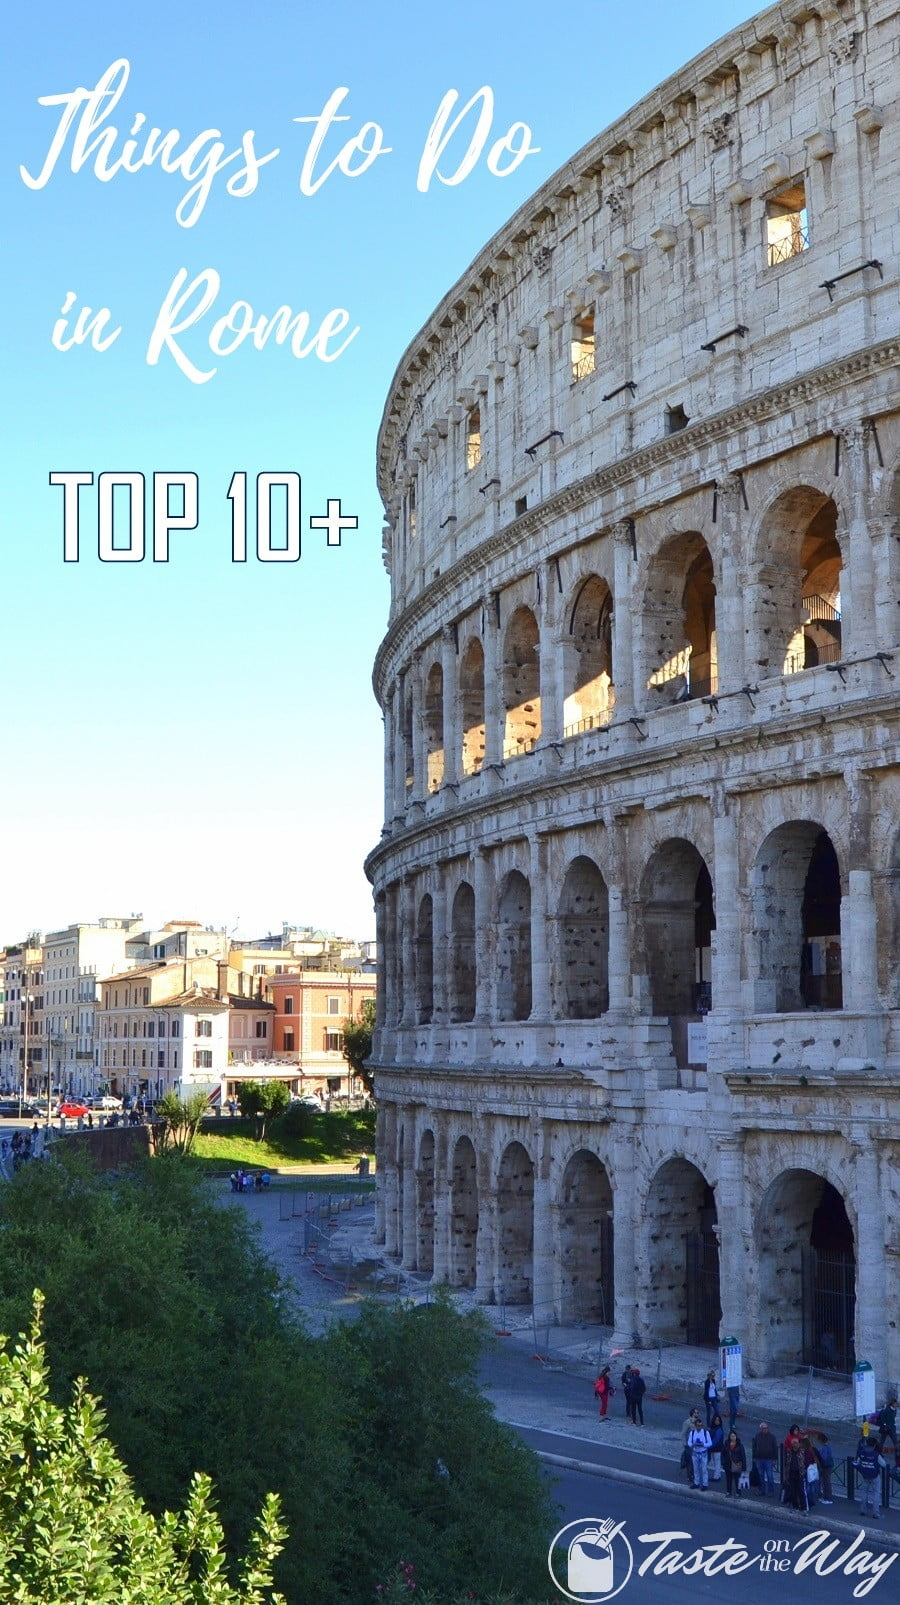 Check out the top 10+ #thingstodo in #Rome, #Italy! #travel #photography